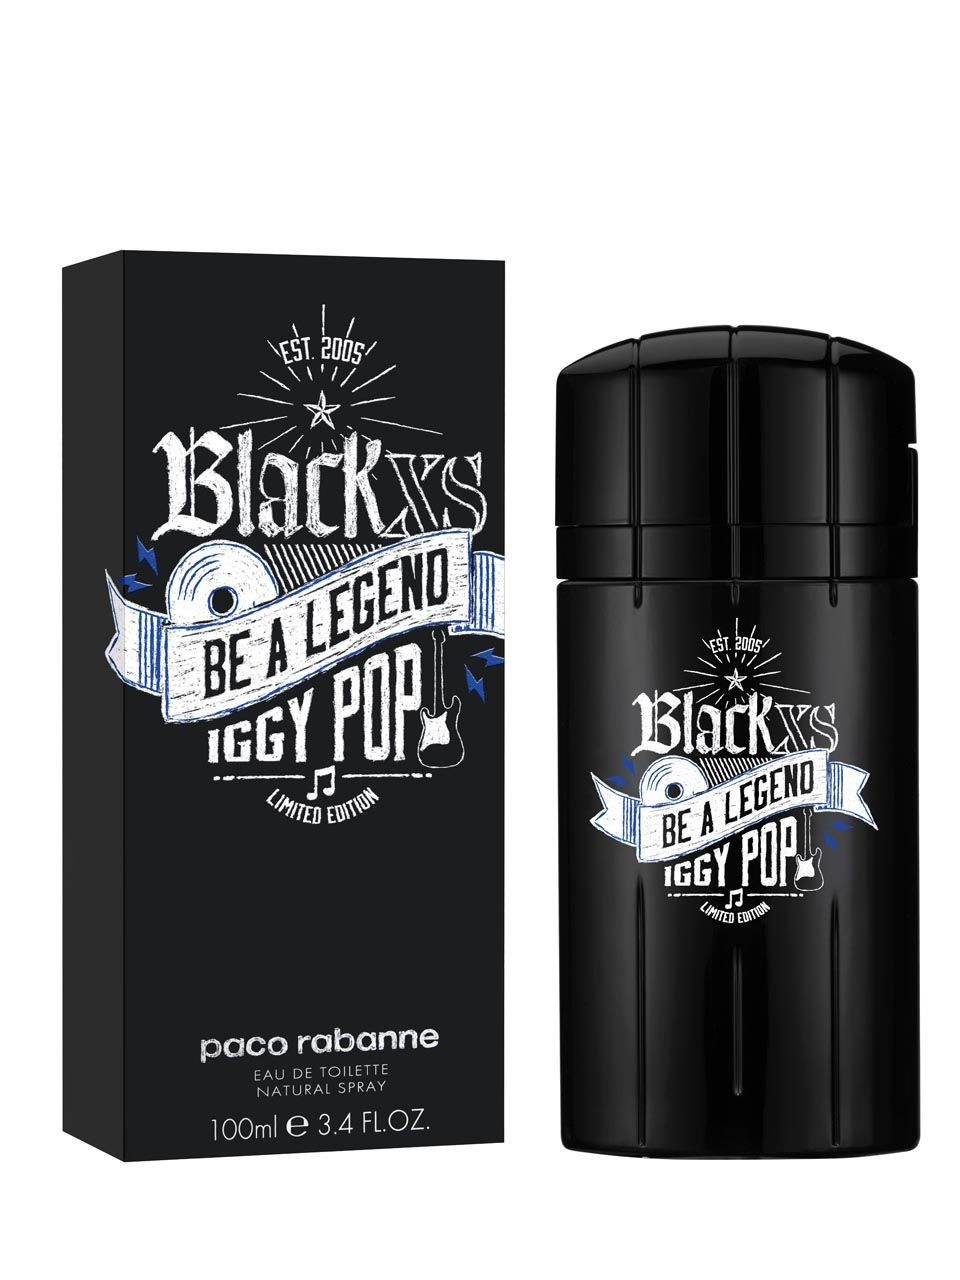 84b77ccd82728 Black XS Be a Legend Iggy Pop Paco Rabanne cologne - a fragrance for ...